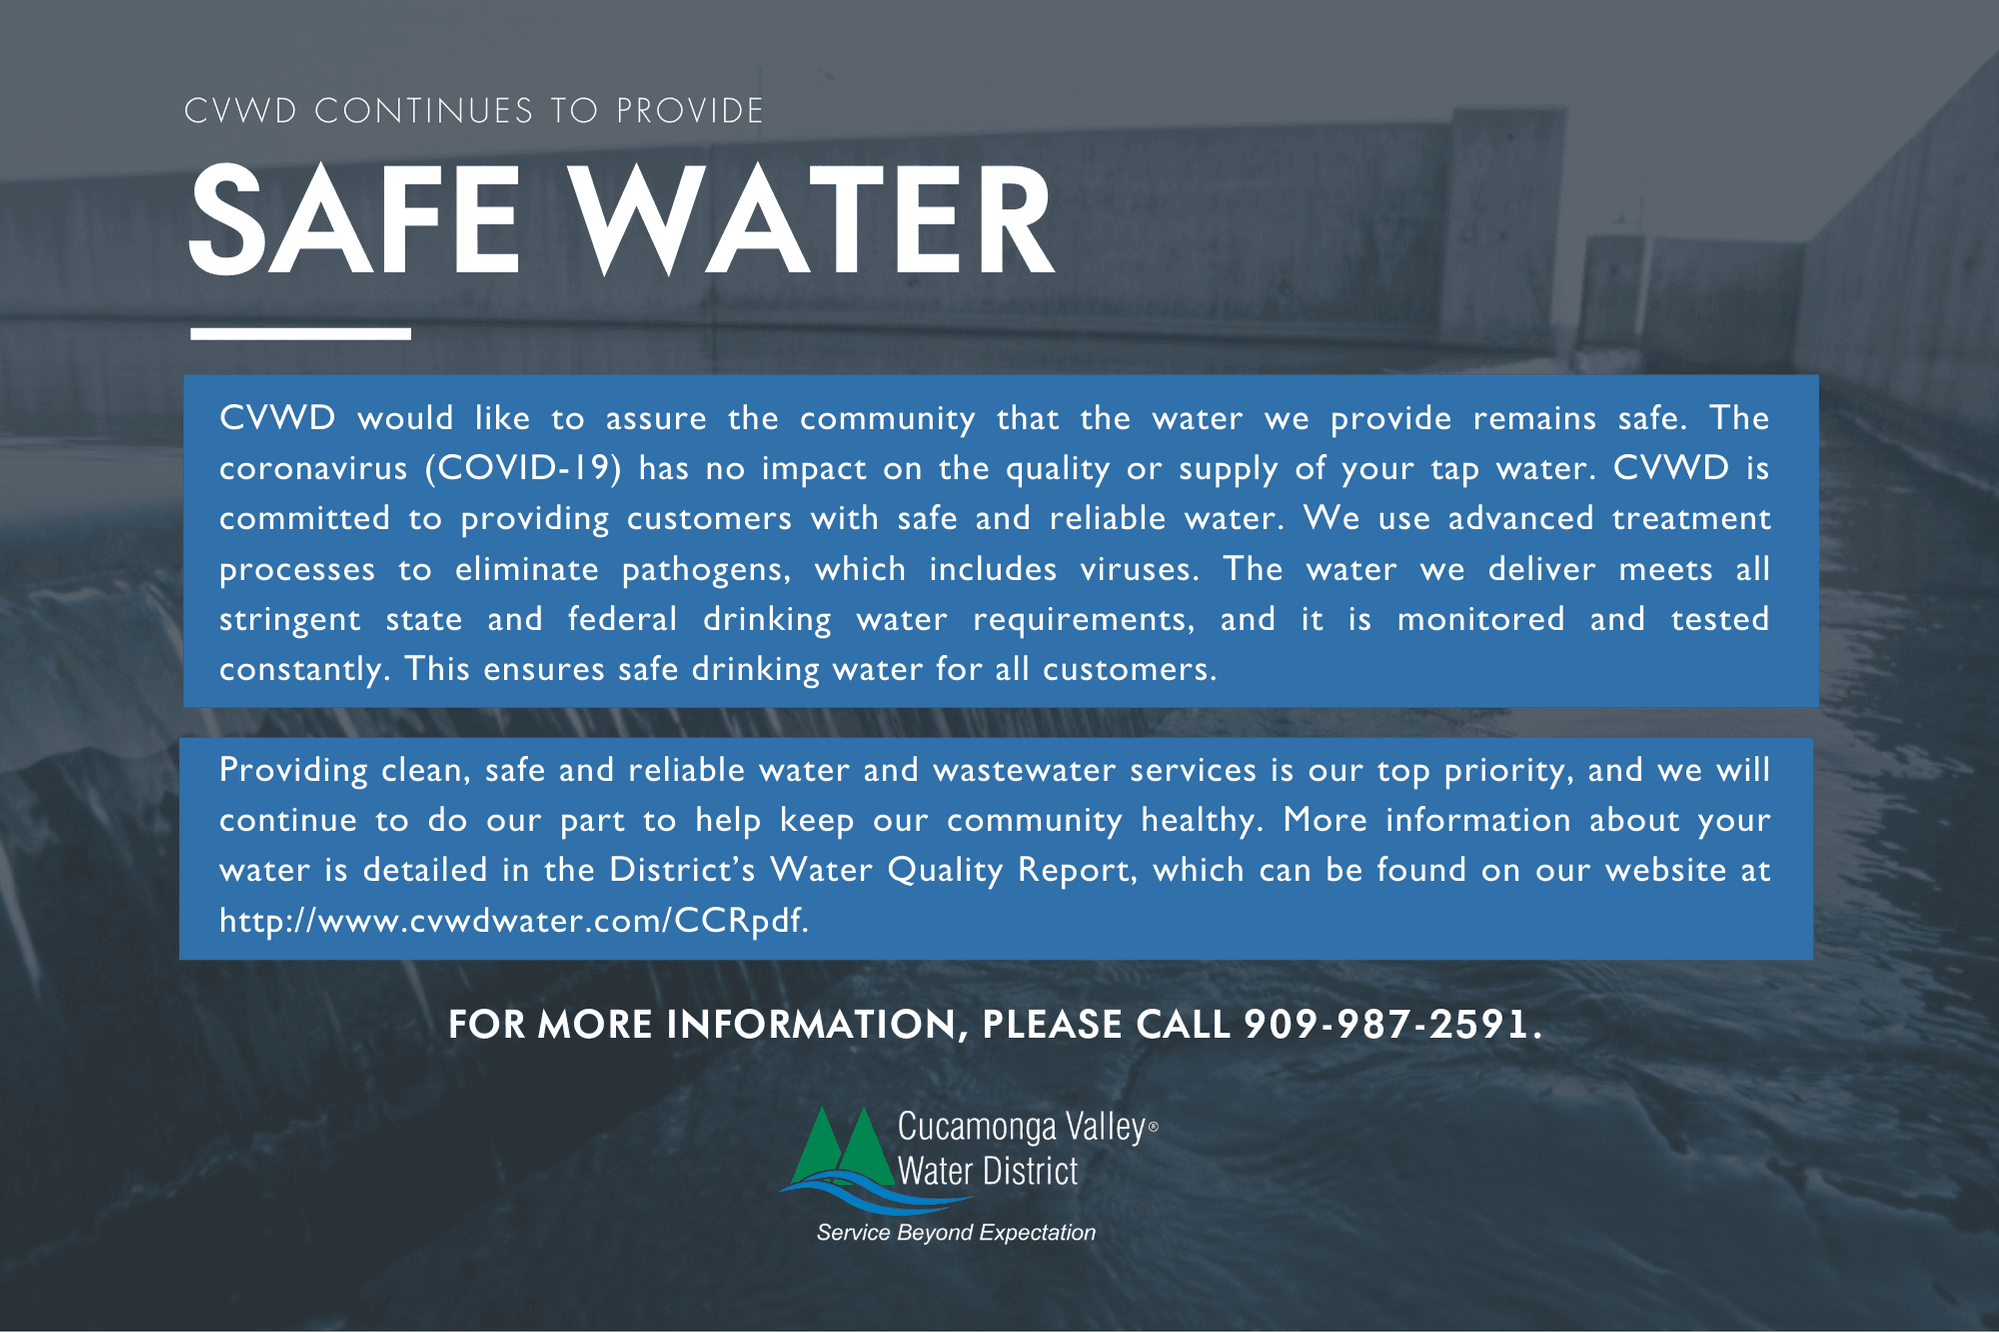 CVWD Continues to Provide Safe Water